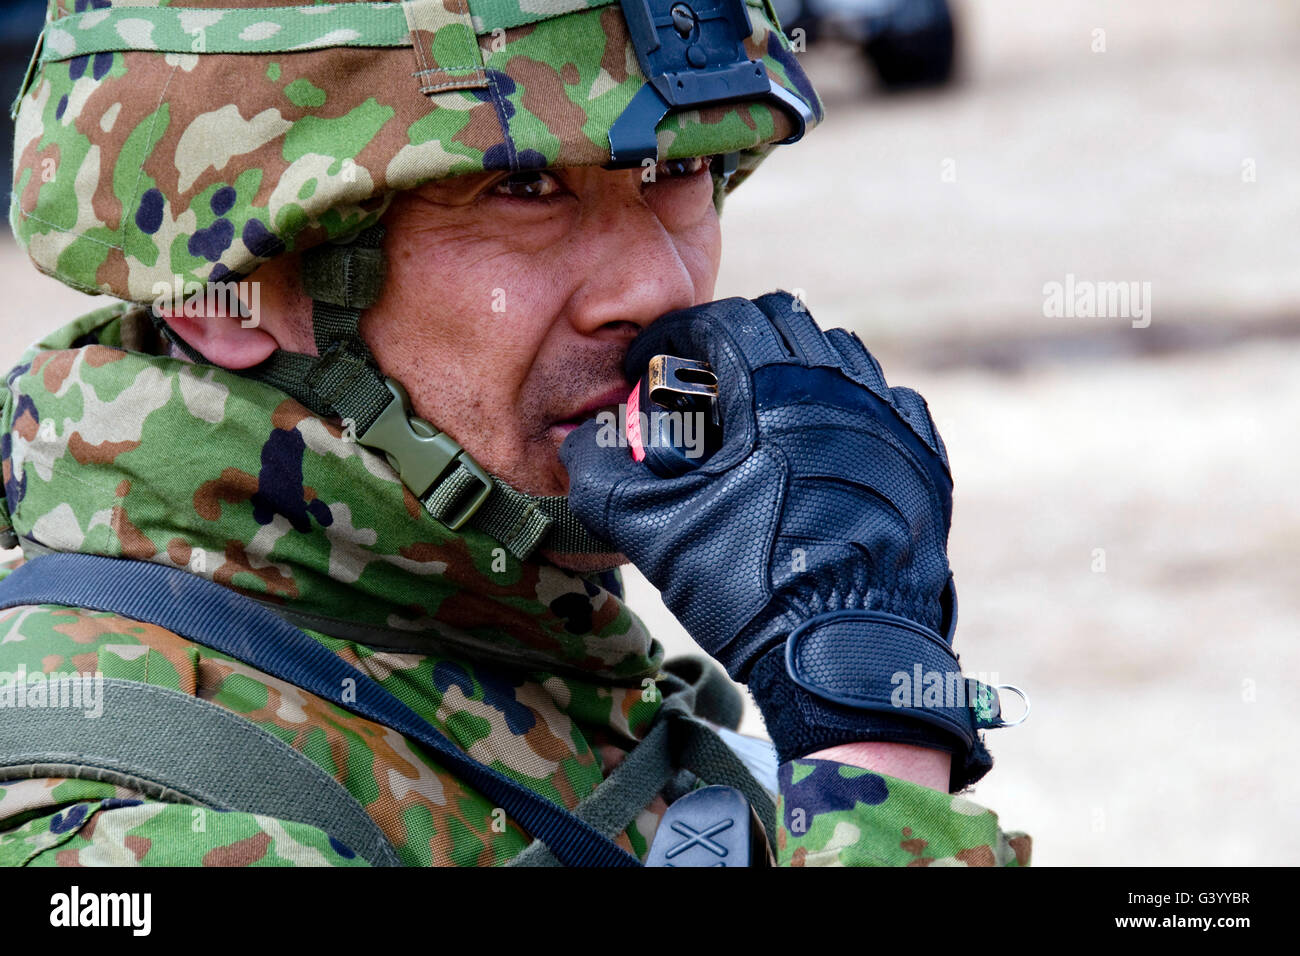 A member of the Japan Ground Self-Defense Force relays instructions to his troops over a radio. - Stock Image